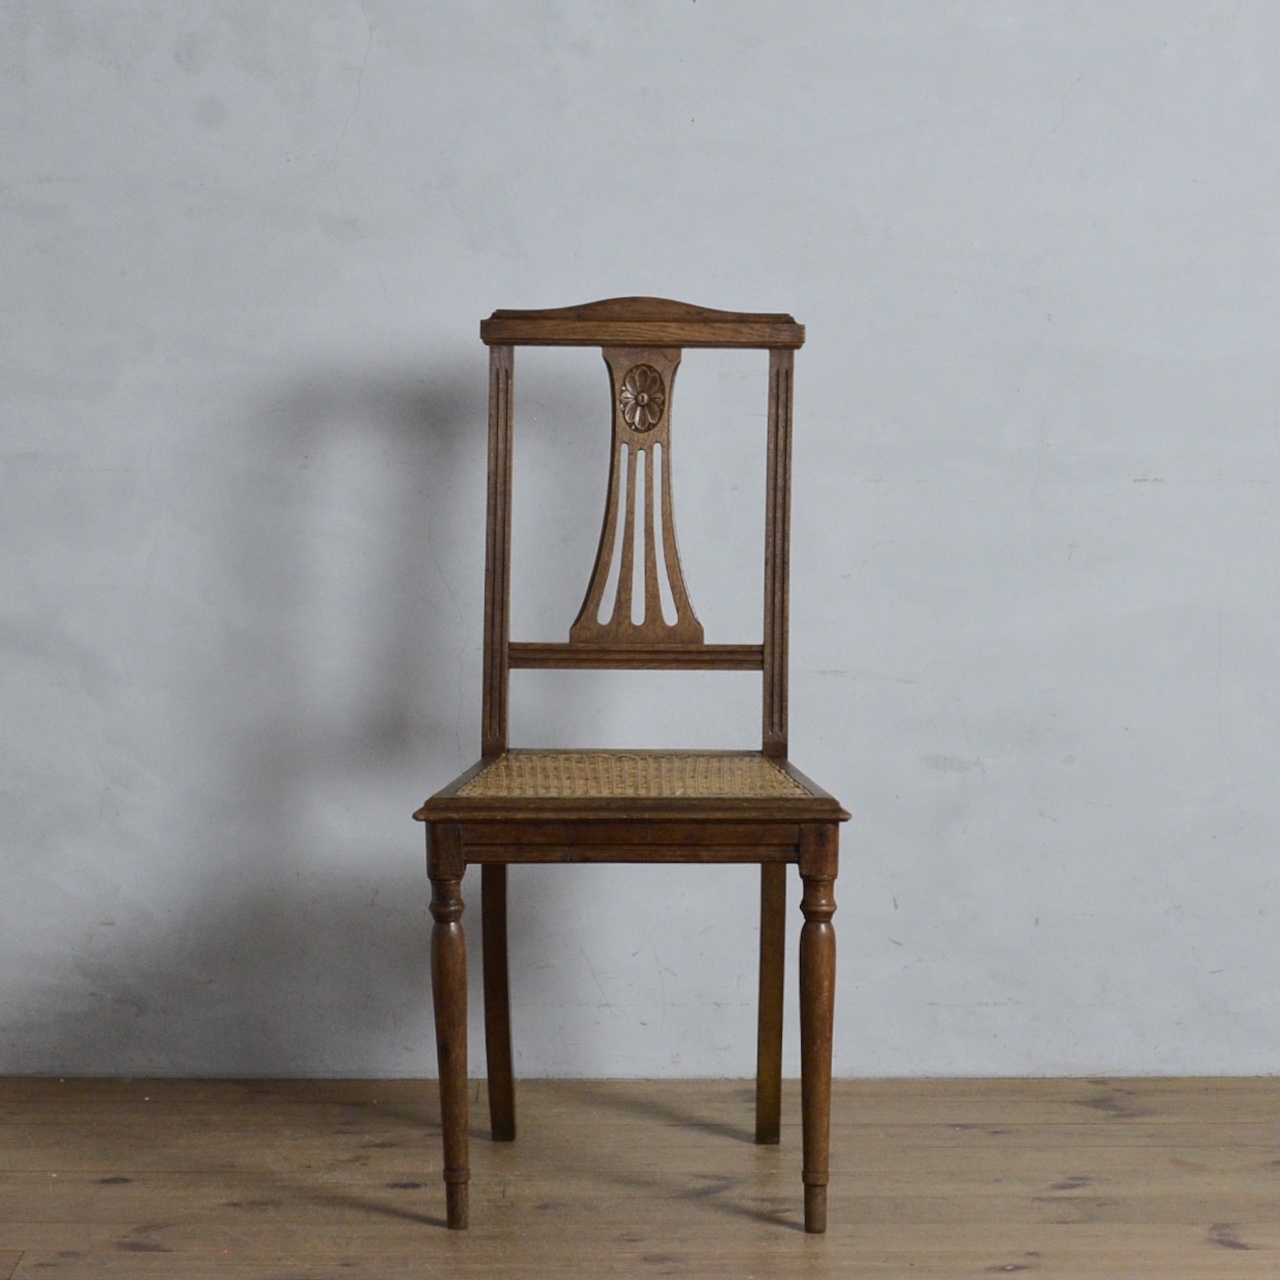 Dining Chair / ダイニング チェア 〈フランスアンティーク・椅子・籐〉112199